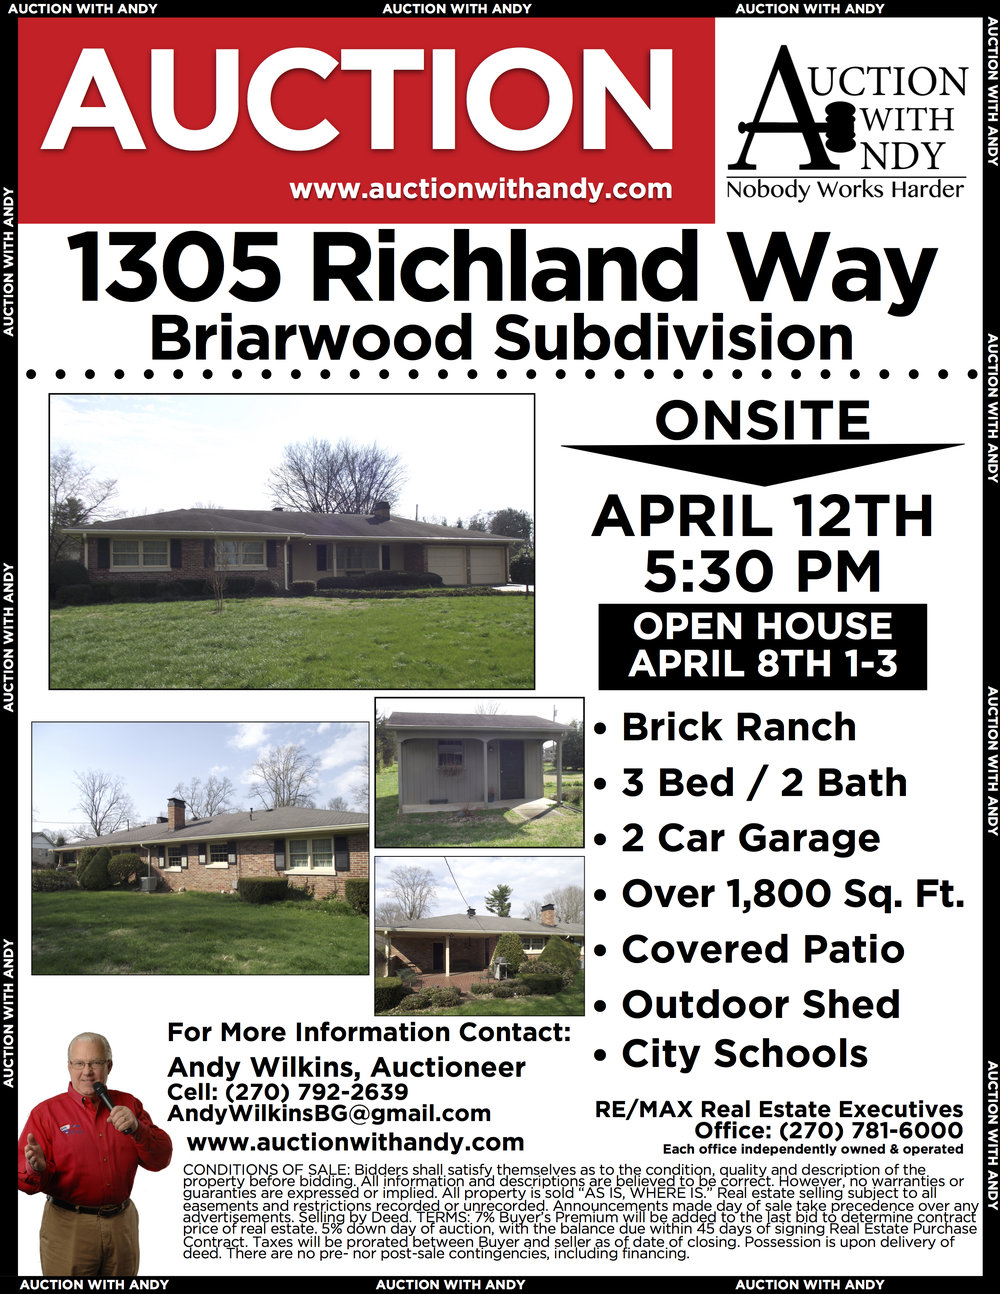 1304 Richland Way Flyer Open House.jpg